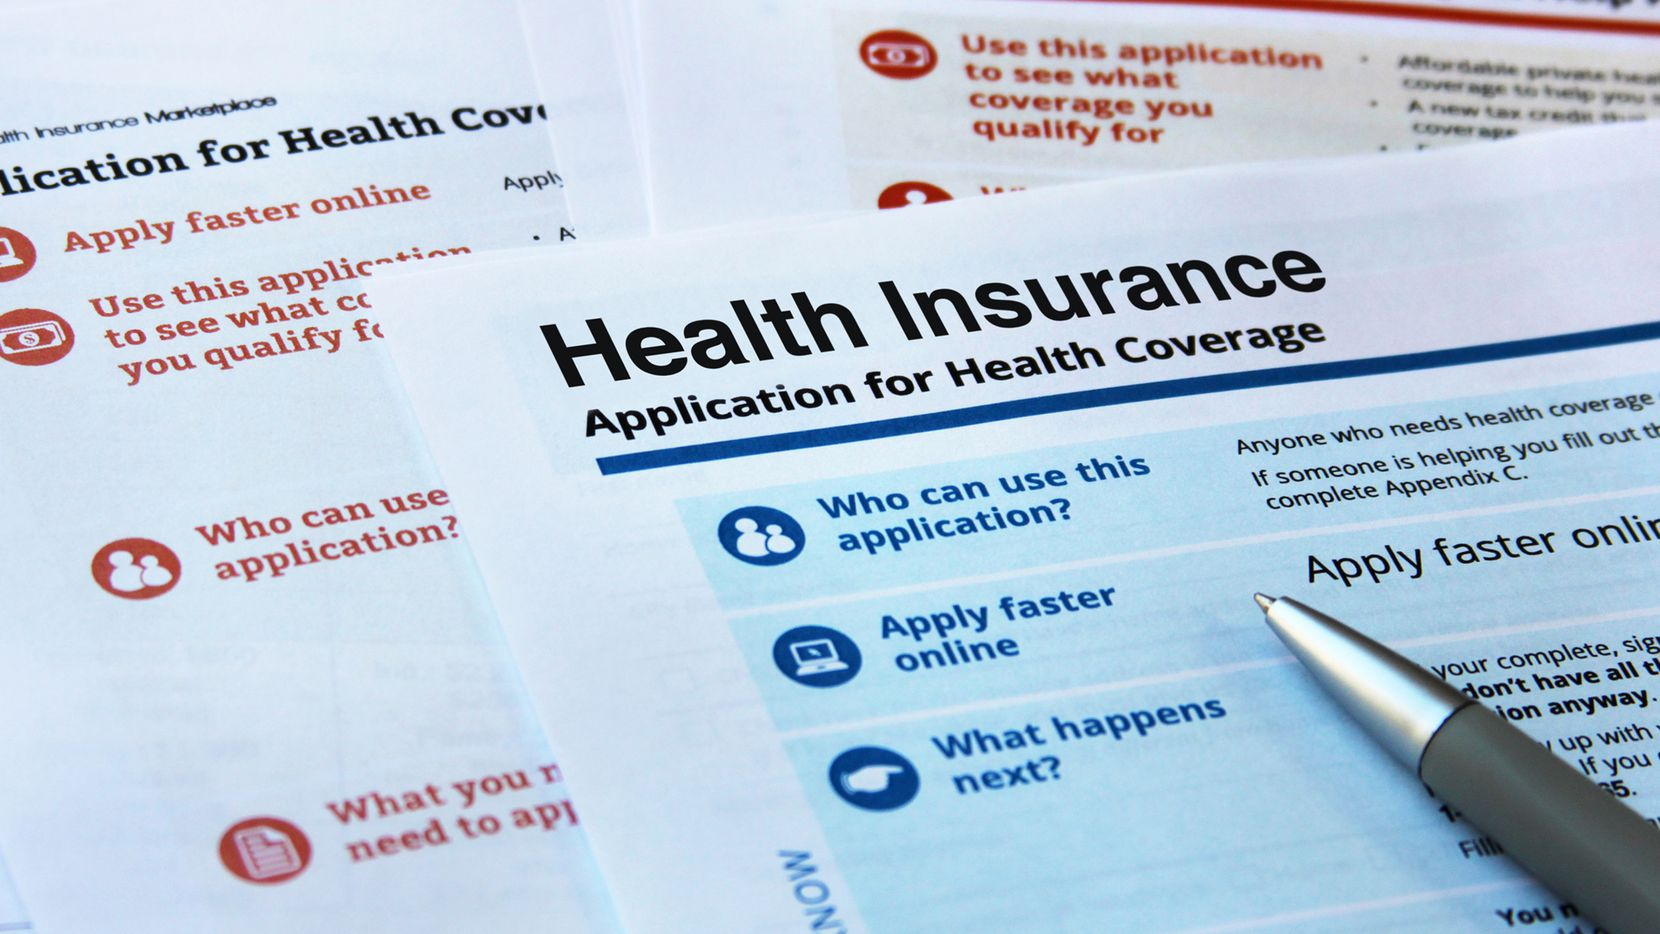 Four health insurance carriers racked up almost $10 billion in quarterly profit gains, and Washington lawmakers are calling for rebates and discounts.